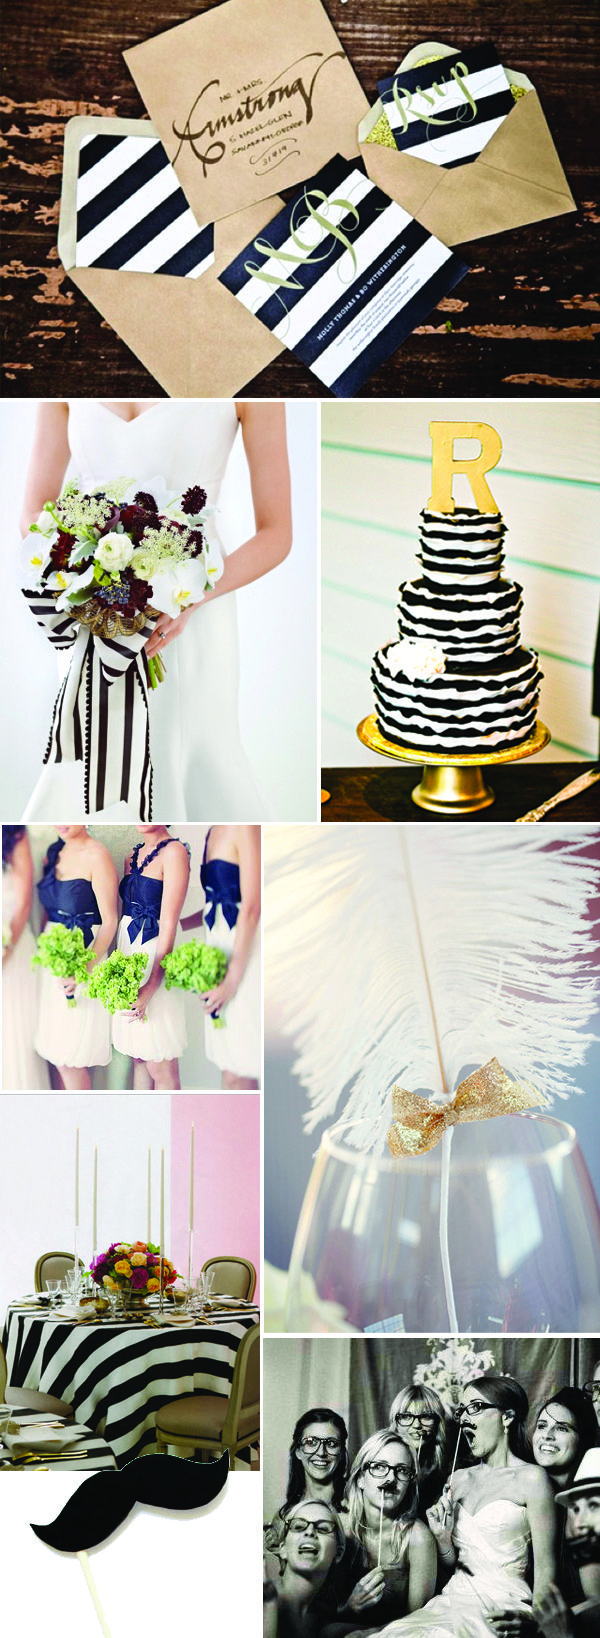 Wedding Decor Inspiration: Black White and Gold ( use navy, grey ...